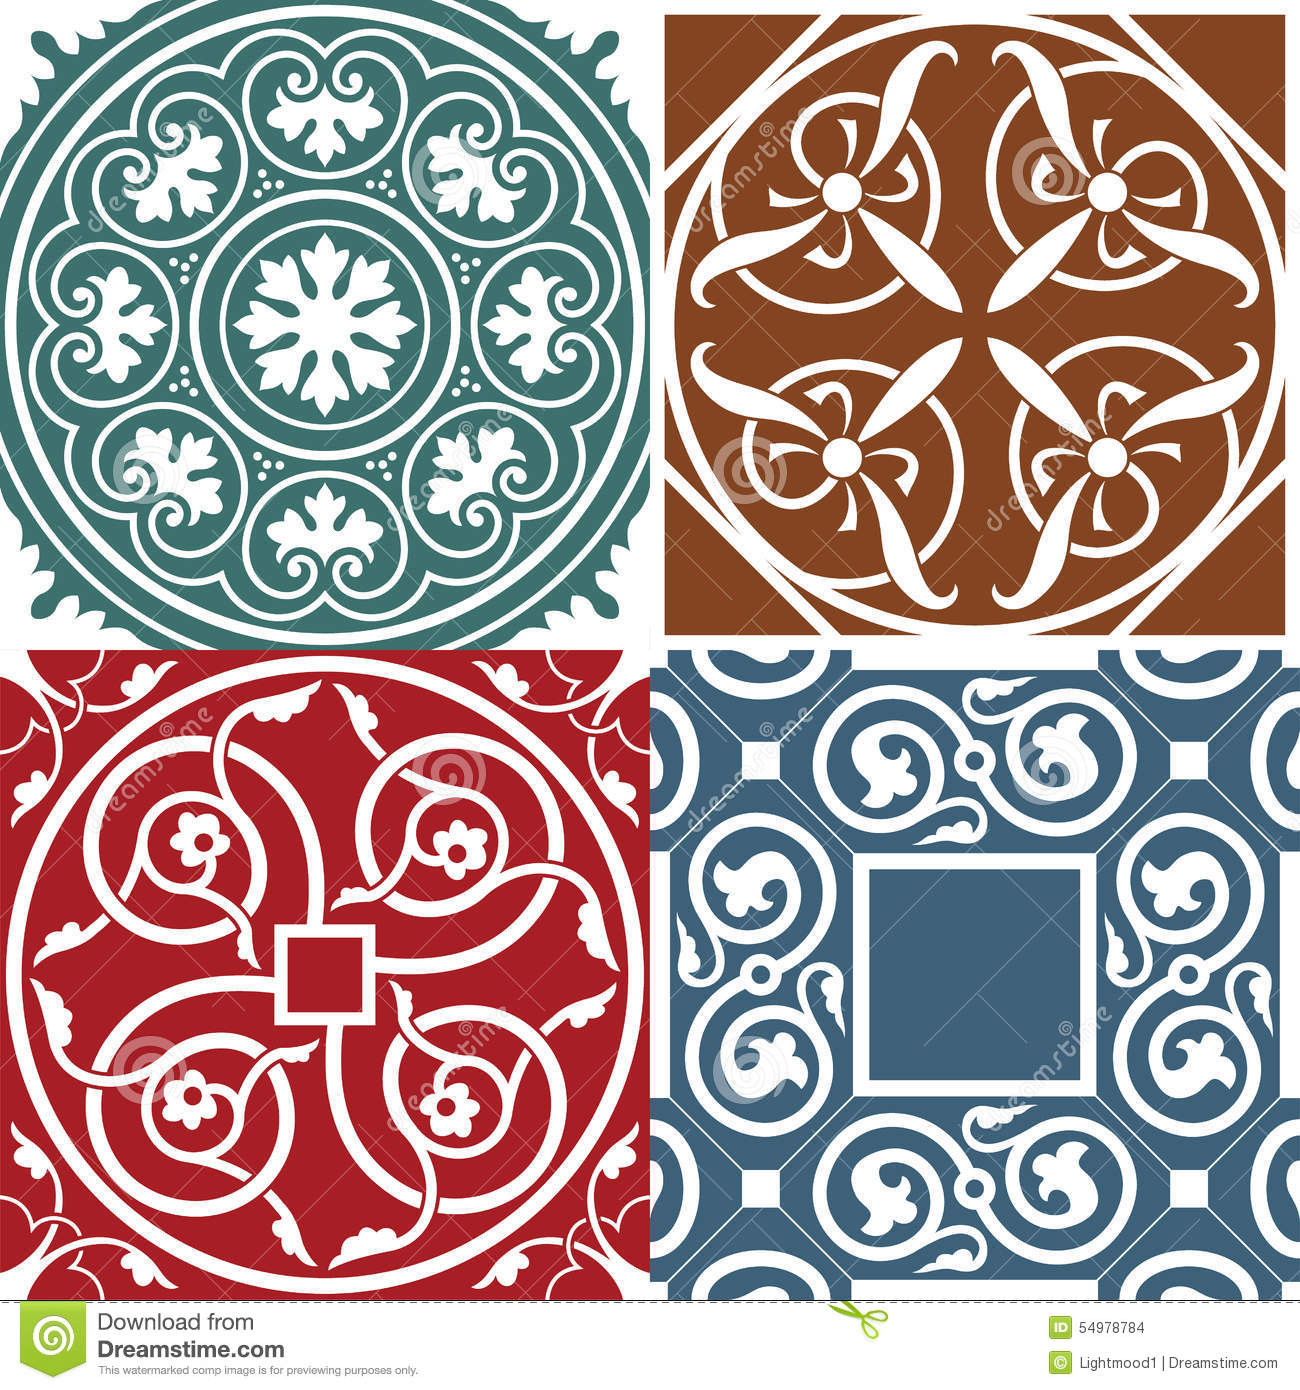 Square patterns(medieval style)